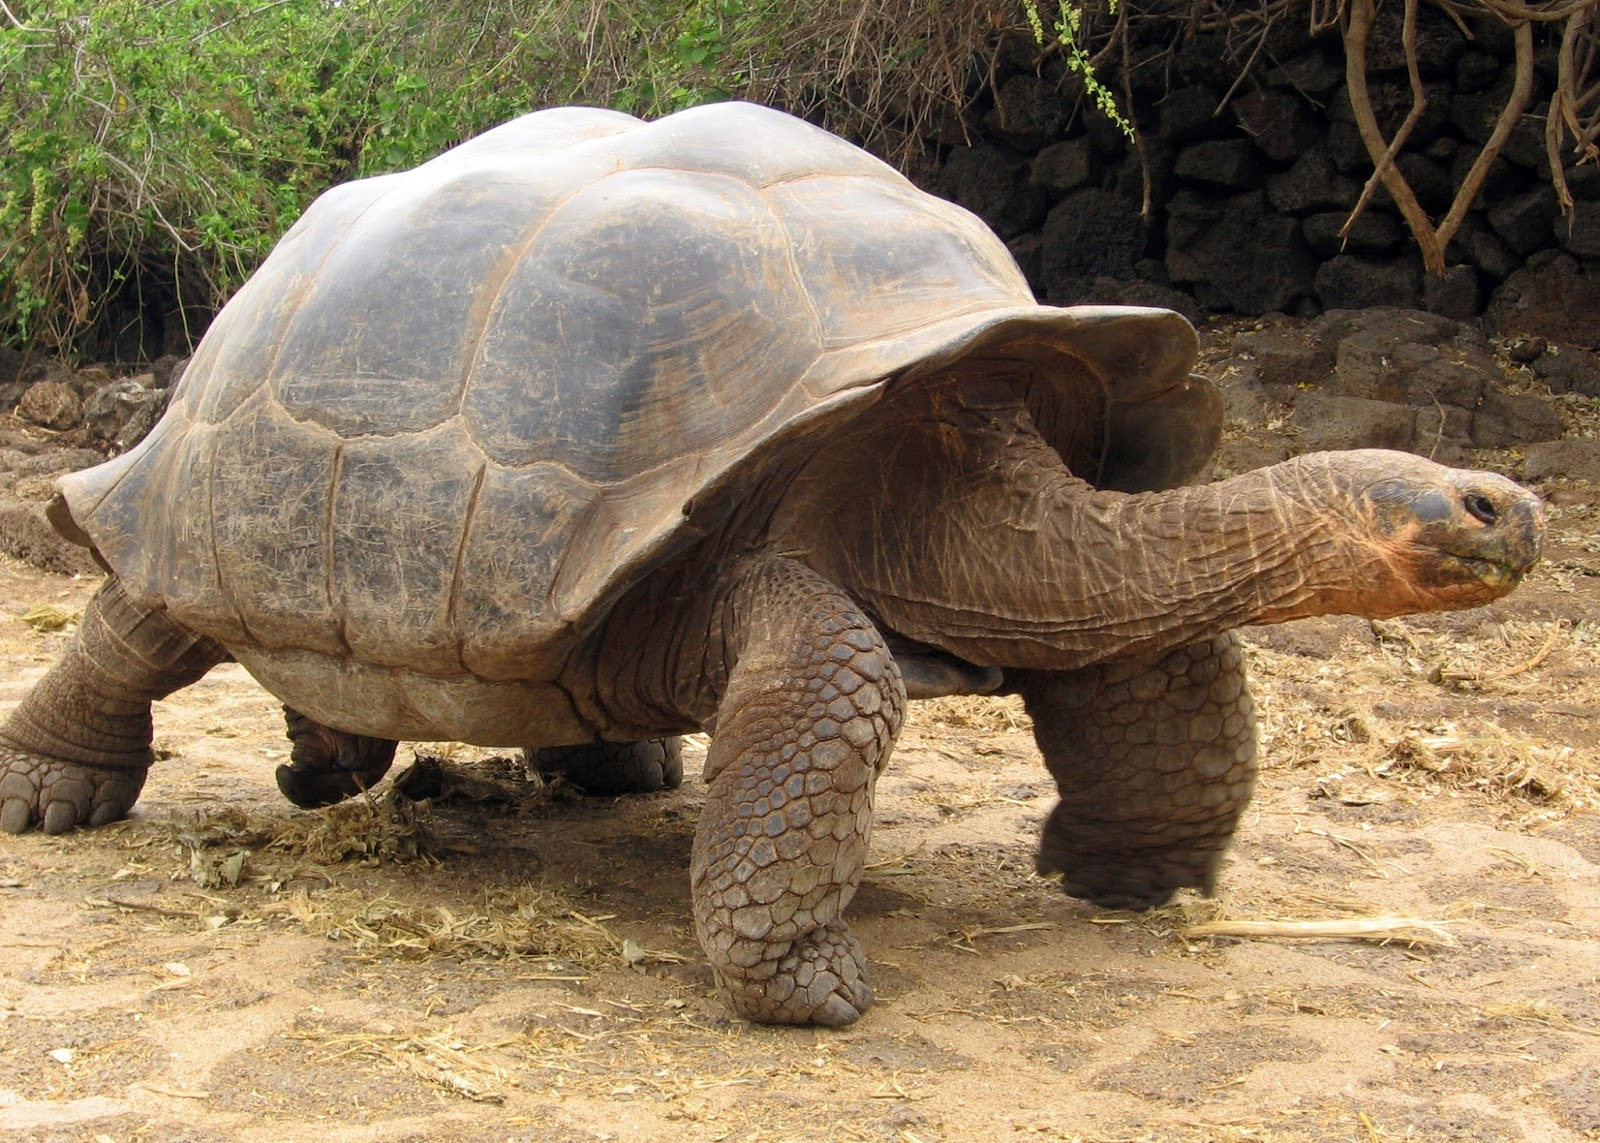 Galapagos Islands: Darwin Inspiration - PRE-TEND Be curious. |Galapagos Tortoise